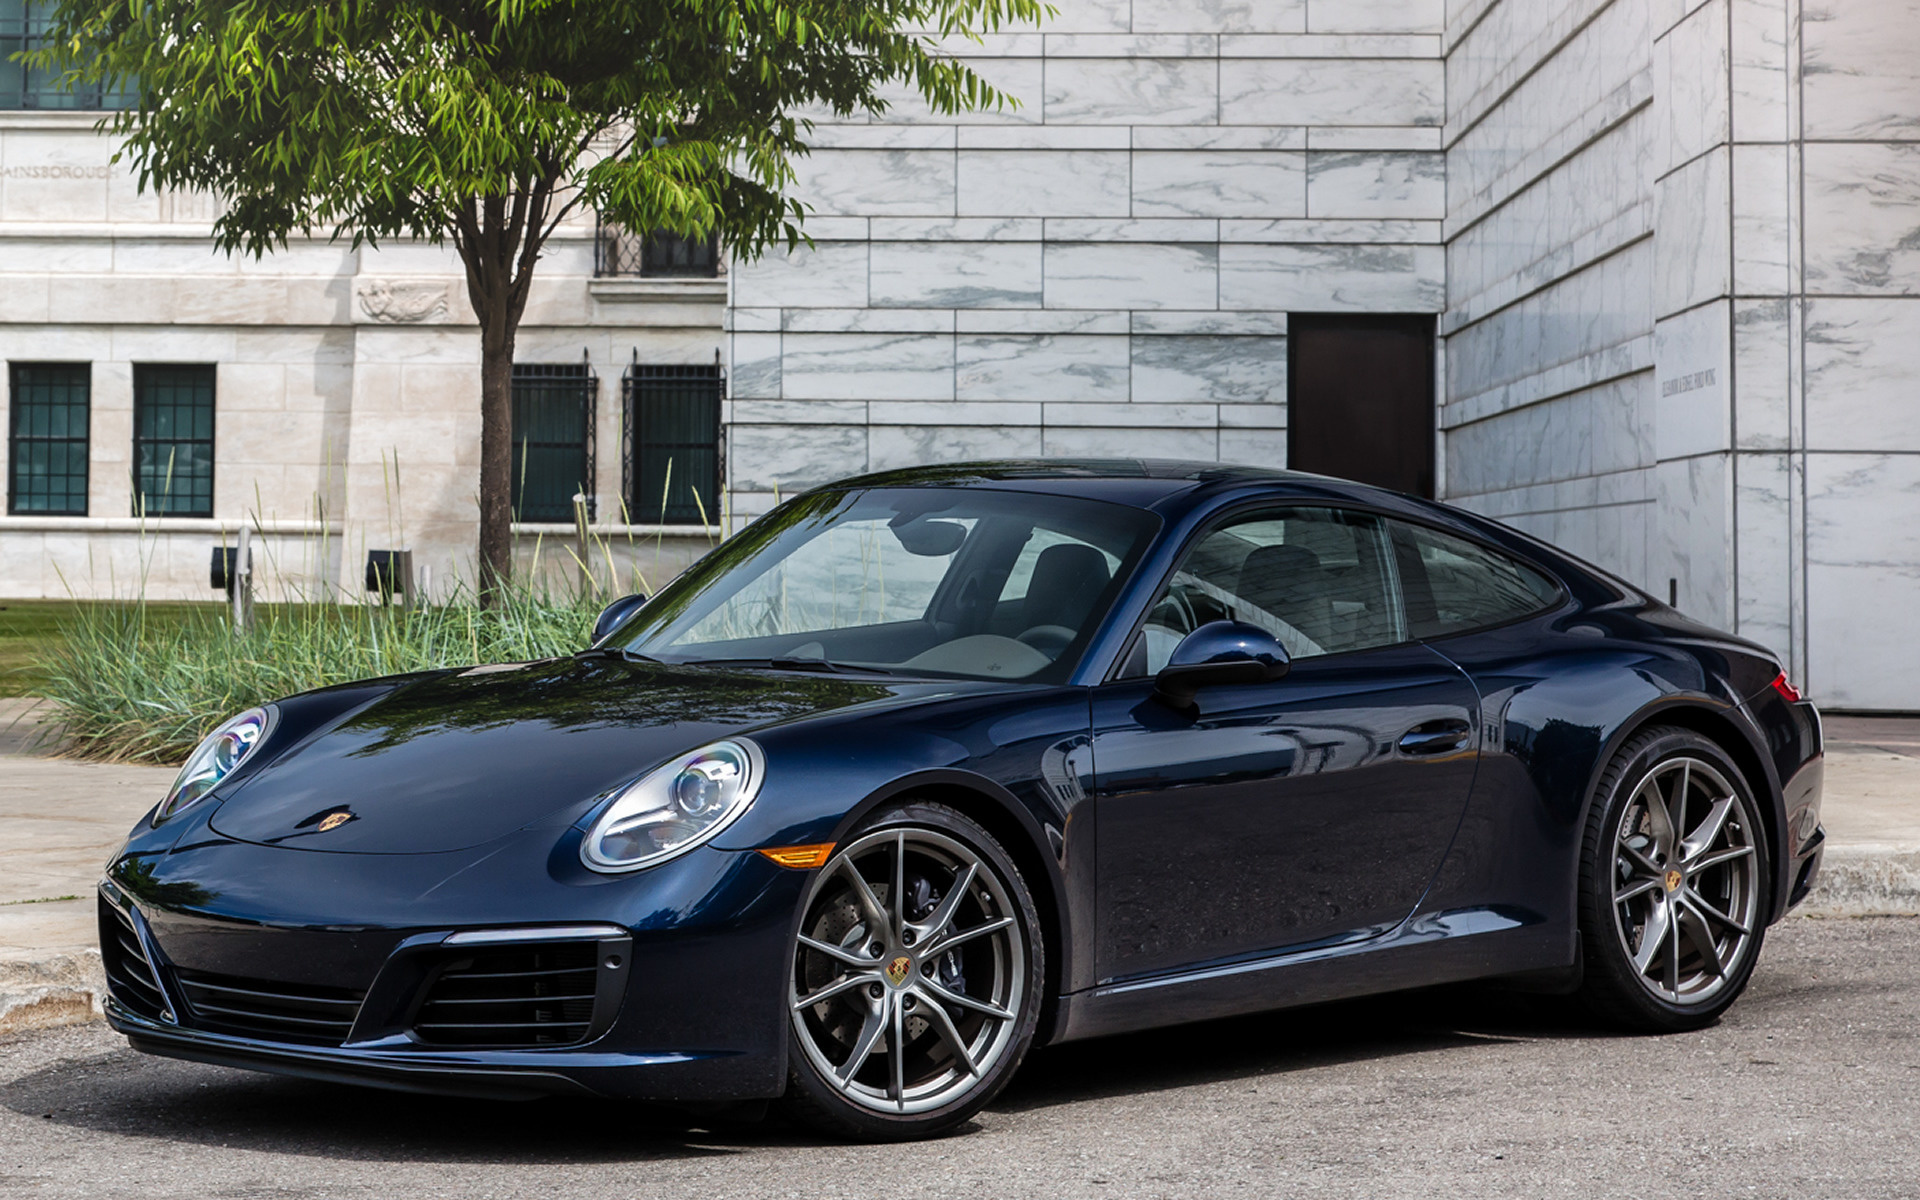 911 Carrera Gts >> 2017 Porsche 911 Carrera (US) - Wallpapers and HD Images ...